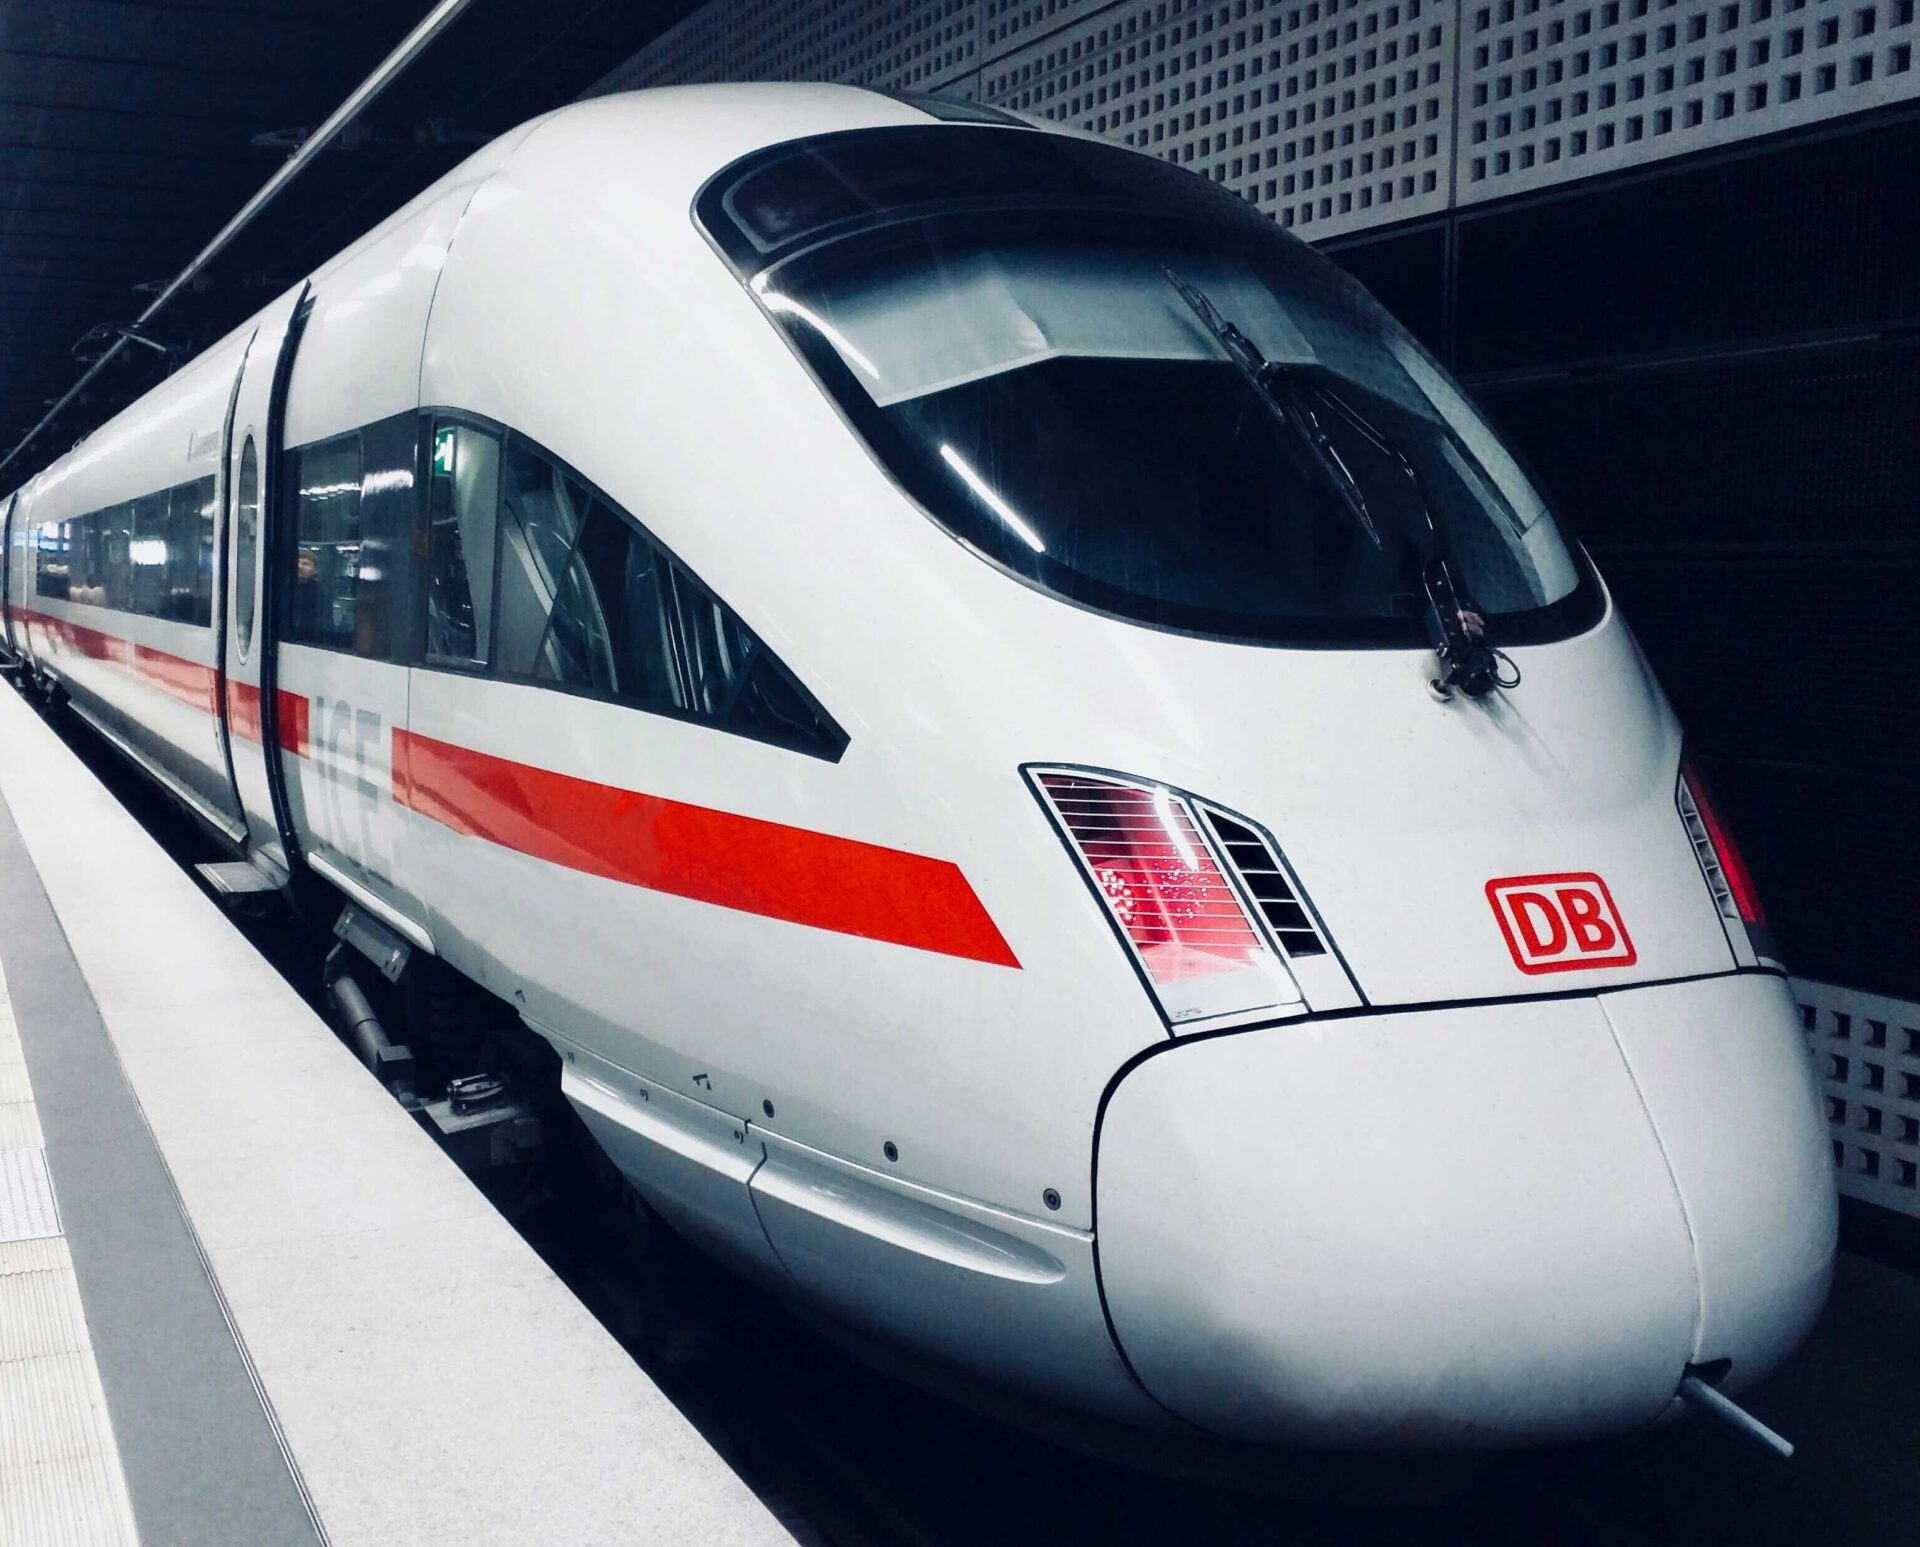 https://www.ccifrance-allemagne.fr/wp-content/uploads/2021/02/train_ICE_Allemagne-scaled.jpg